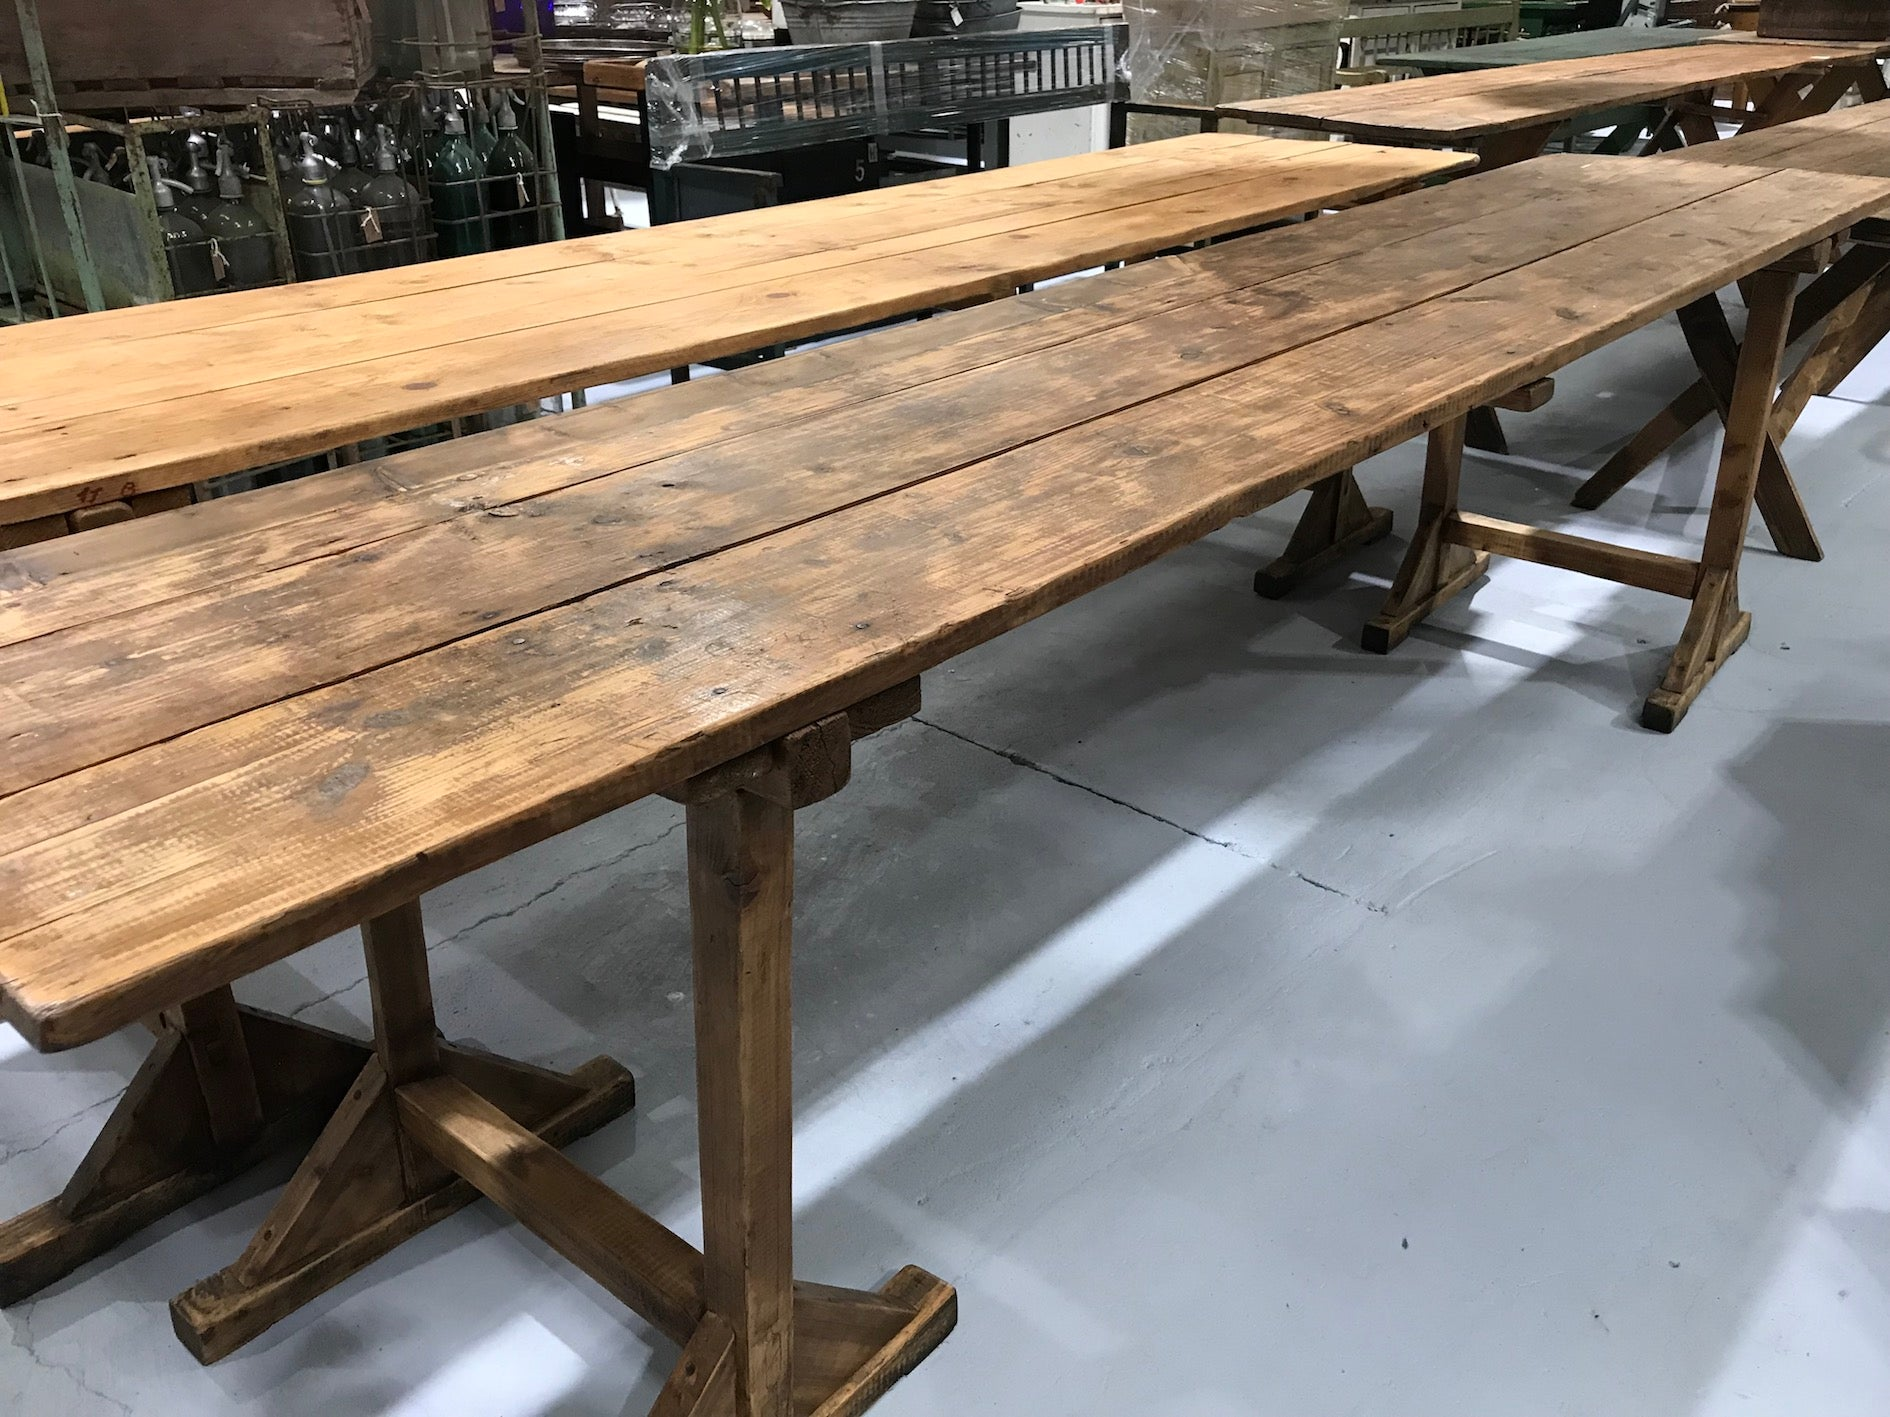 Vintage industrial European kitchen farmhouse dining table 3.0 long #1963 D6